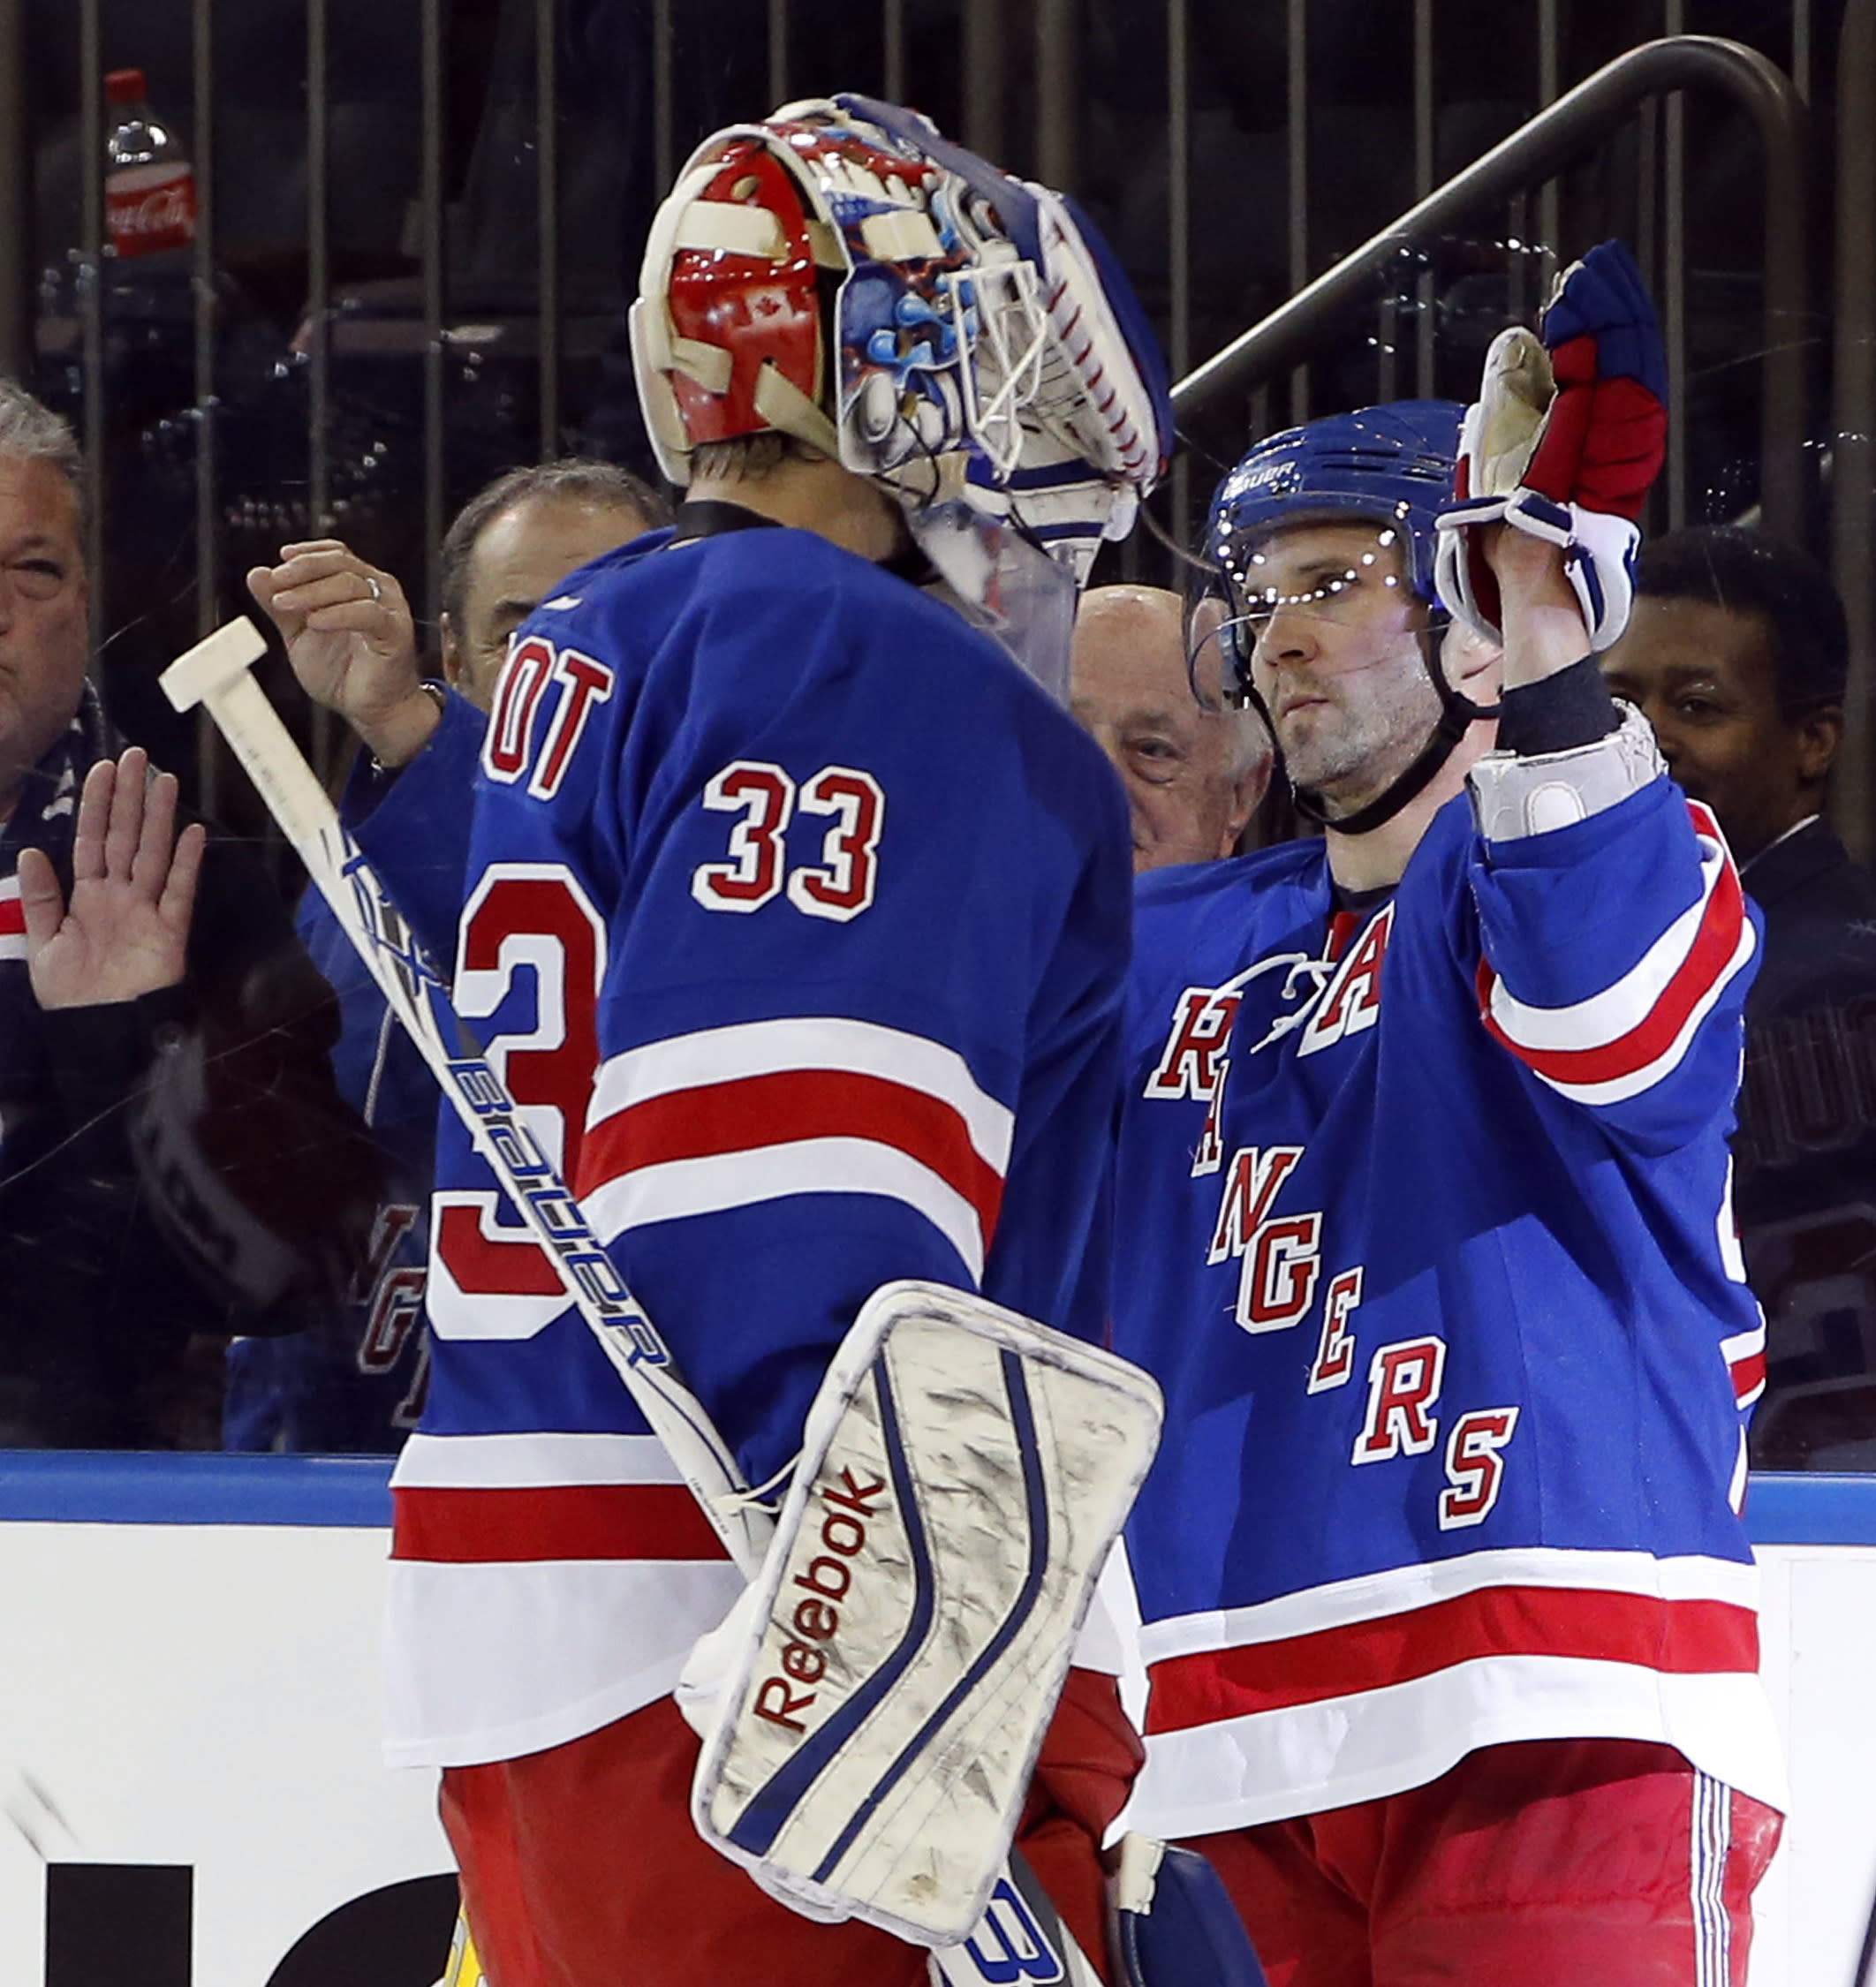 Rangers keep on winning without Lundqvist and Nash